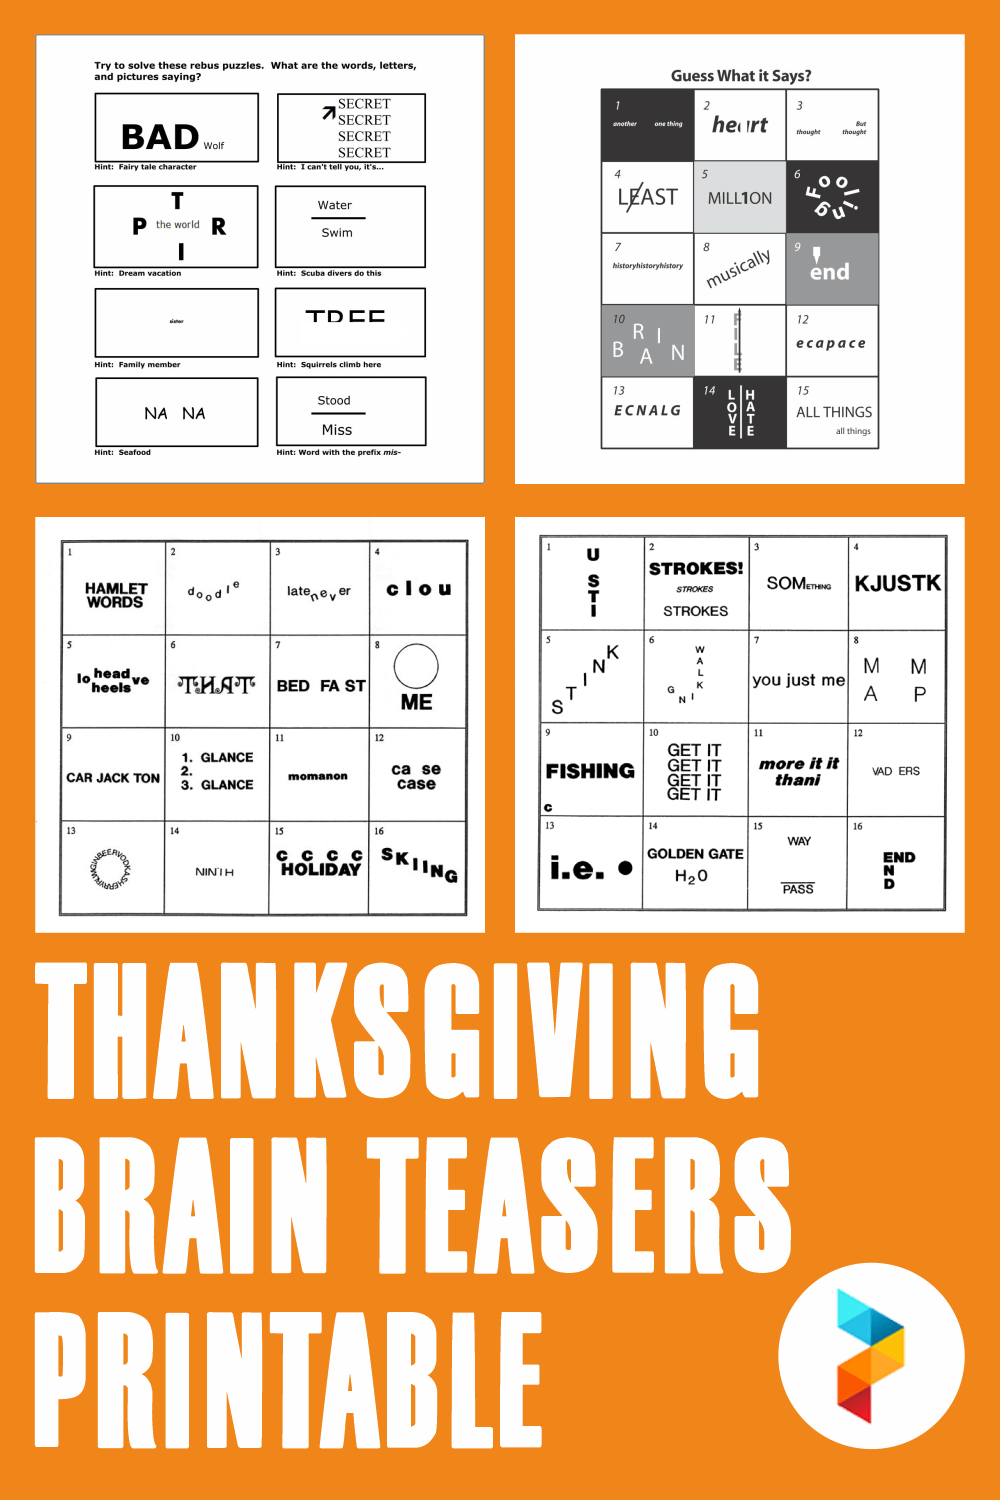 hight resolution of 5 Best Thanksgiving Brain Teasers Printable - printablee.com